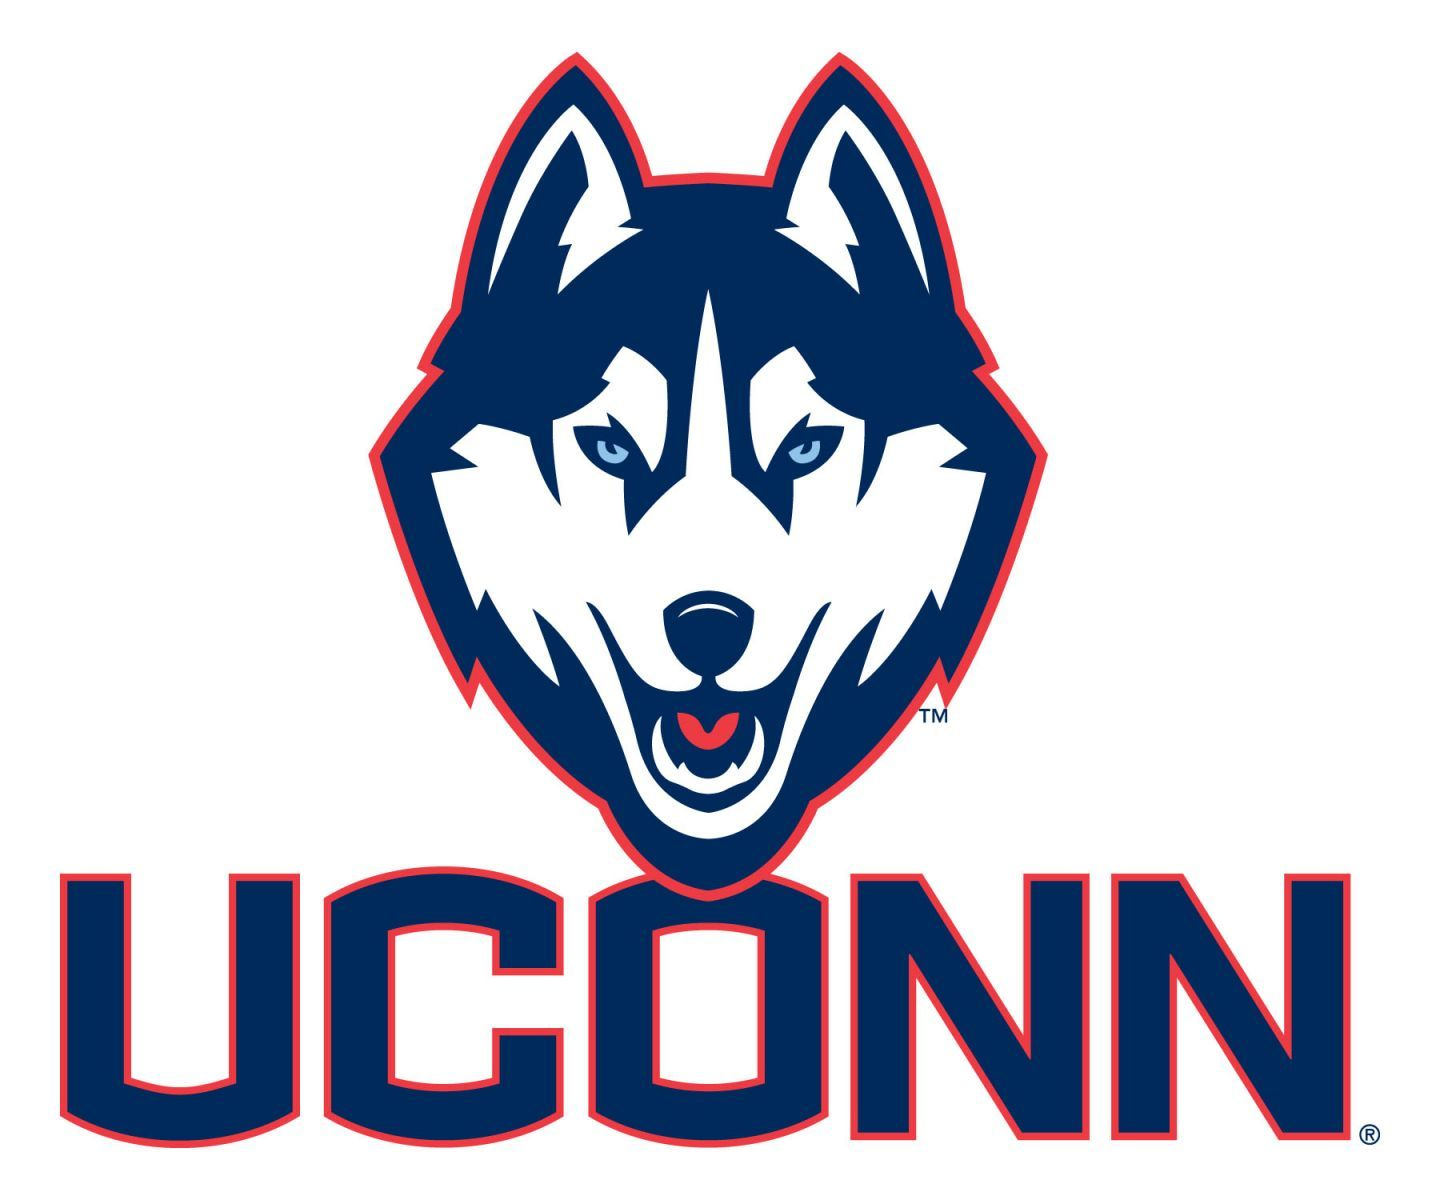 pin by abby on uconn pinterest rh pinterest com UConn Basketball Court UConn College Basketball Logos